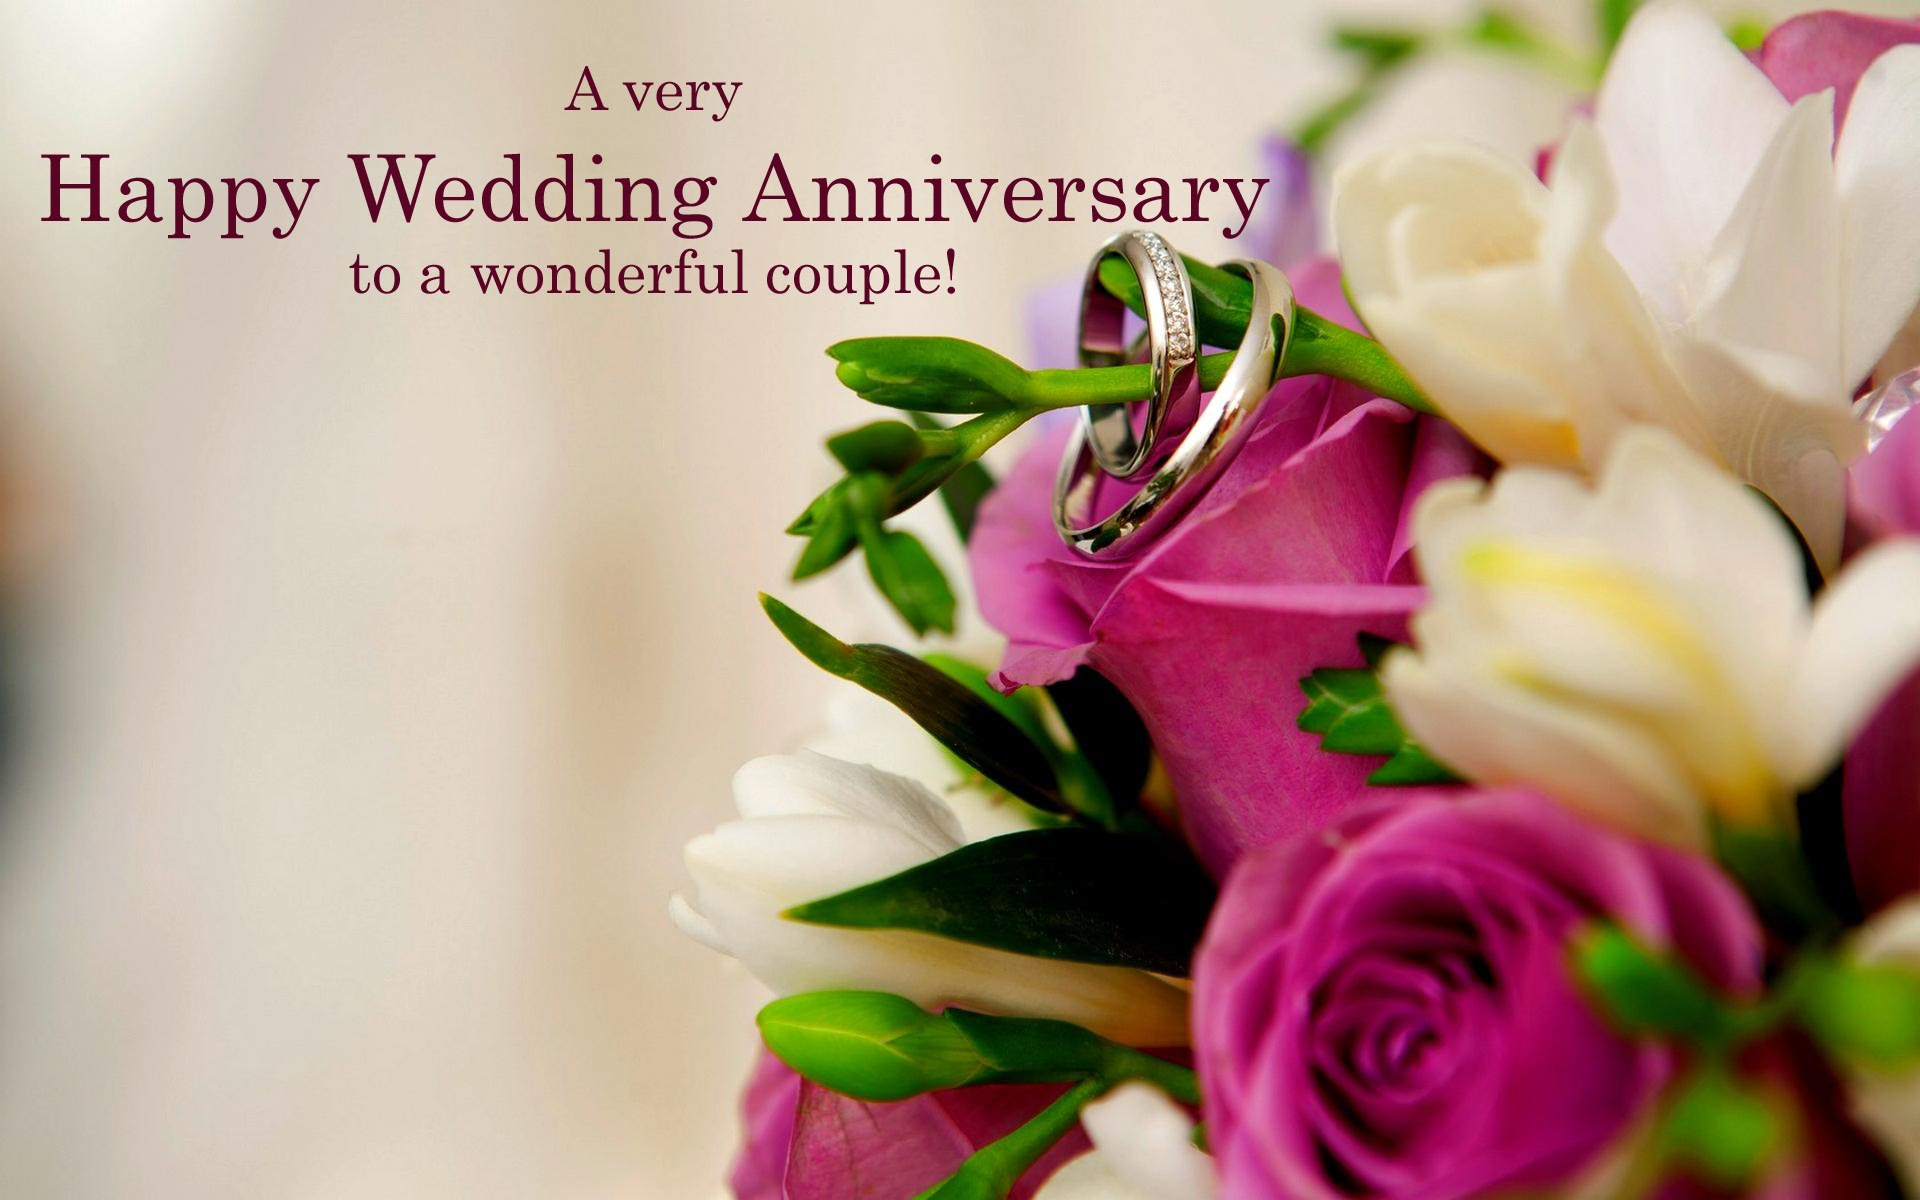 A very happy wedding anniversary desicomments